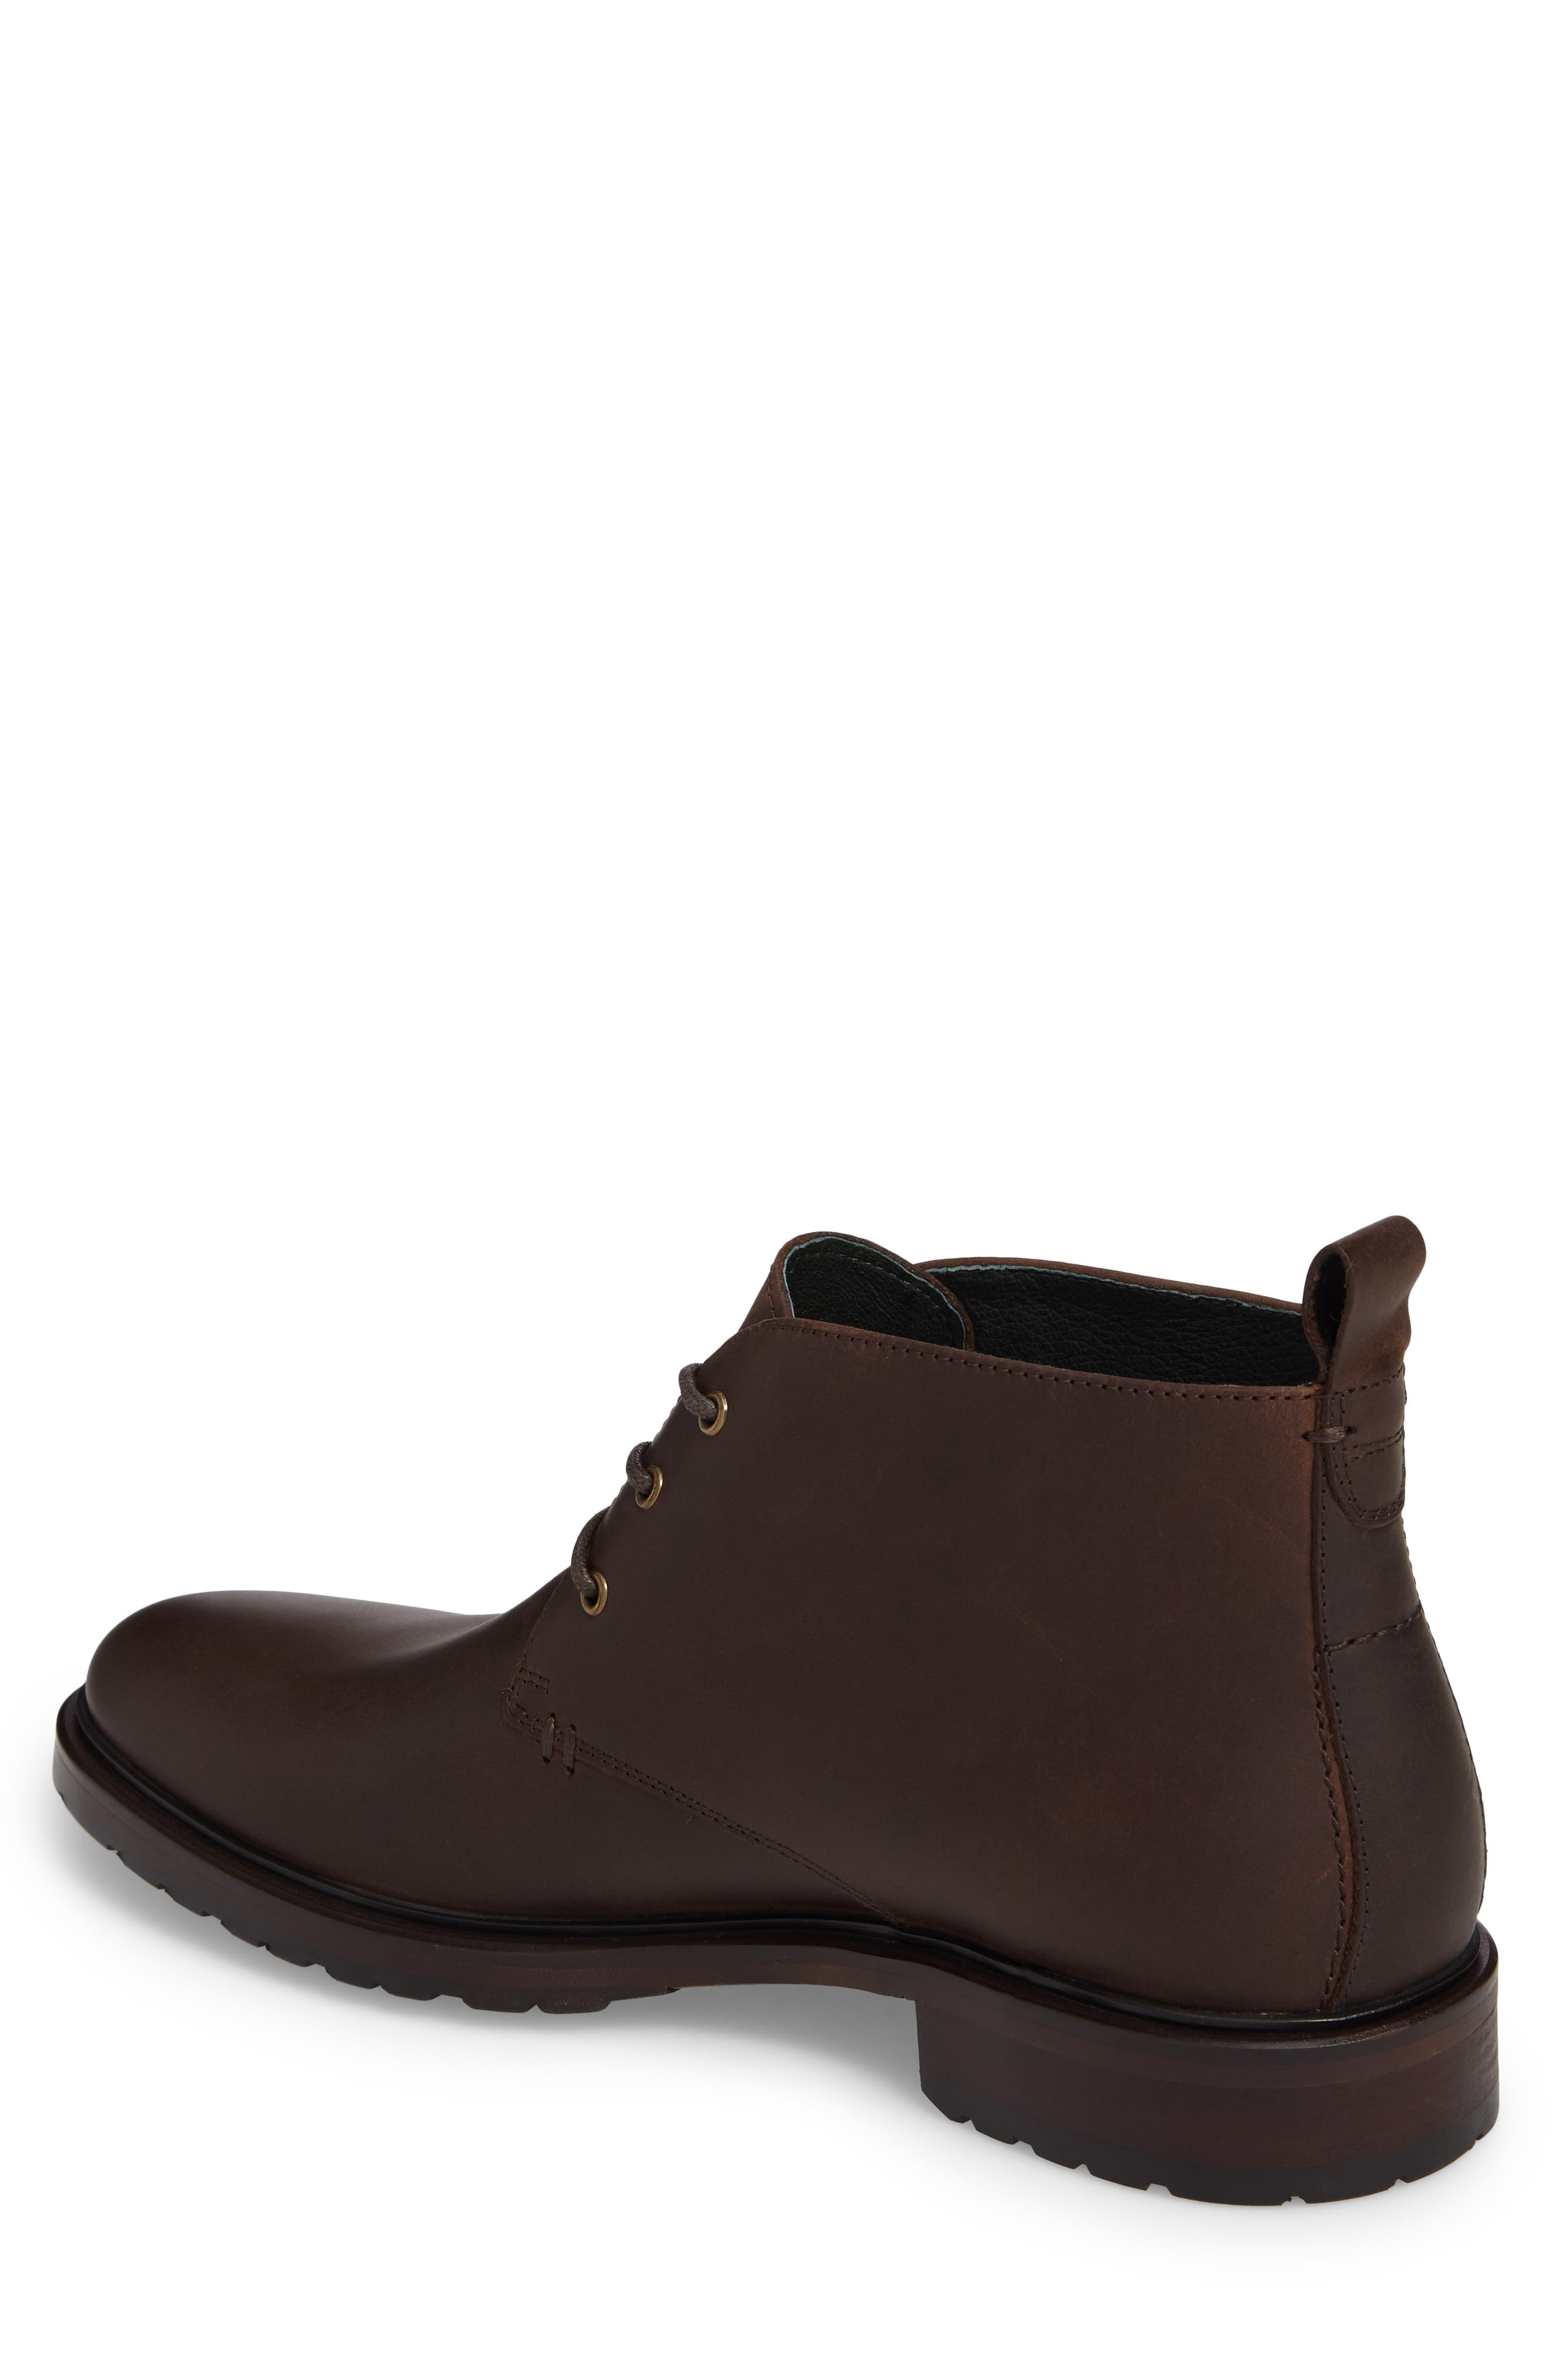 Myles Chukka Boot,                             Alternate thumbnail 2, color,                             Dark Brown Leather